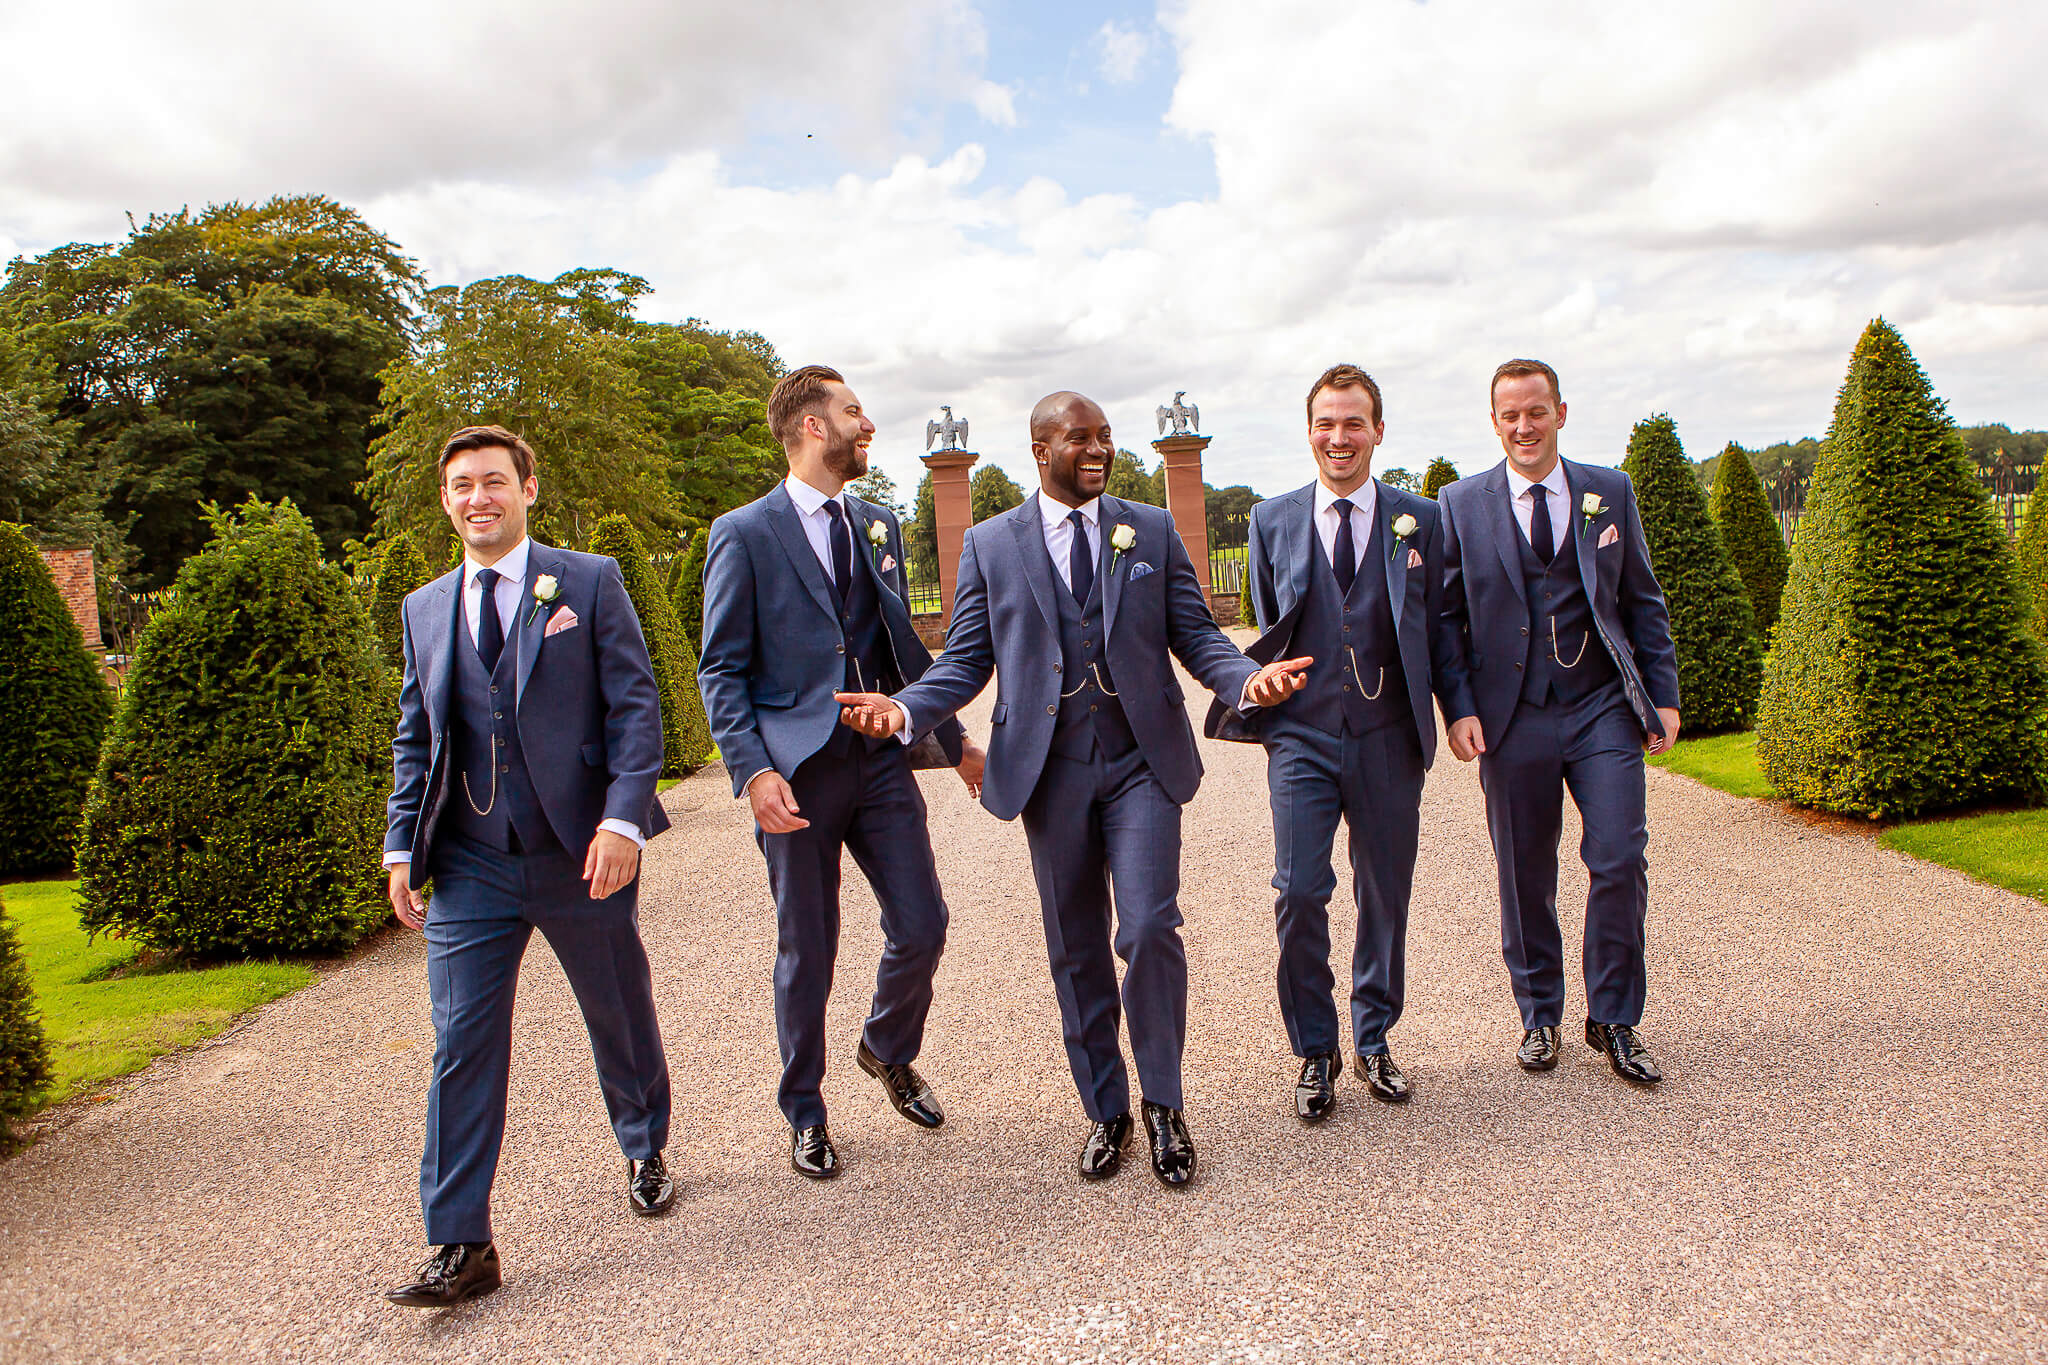 best-wedding-photographers-uk-europe-stanbury-photography-025